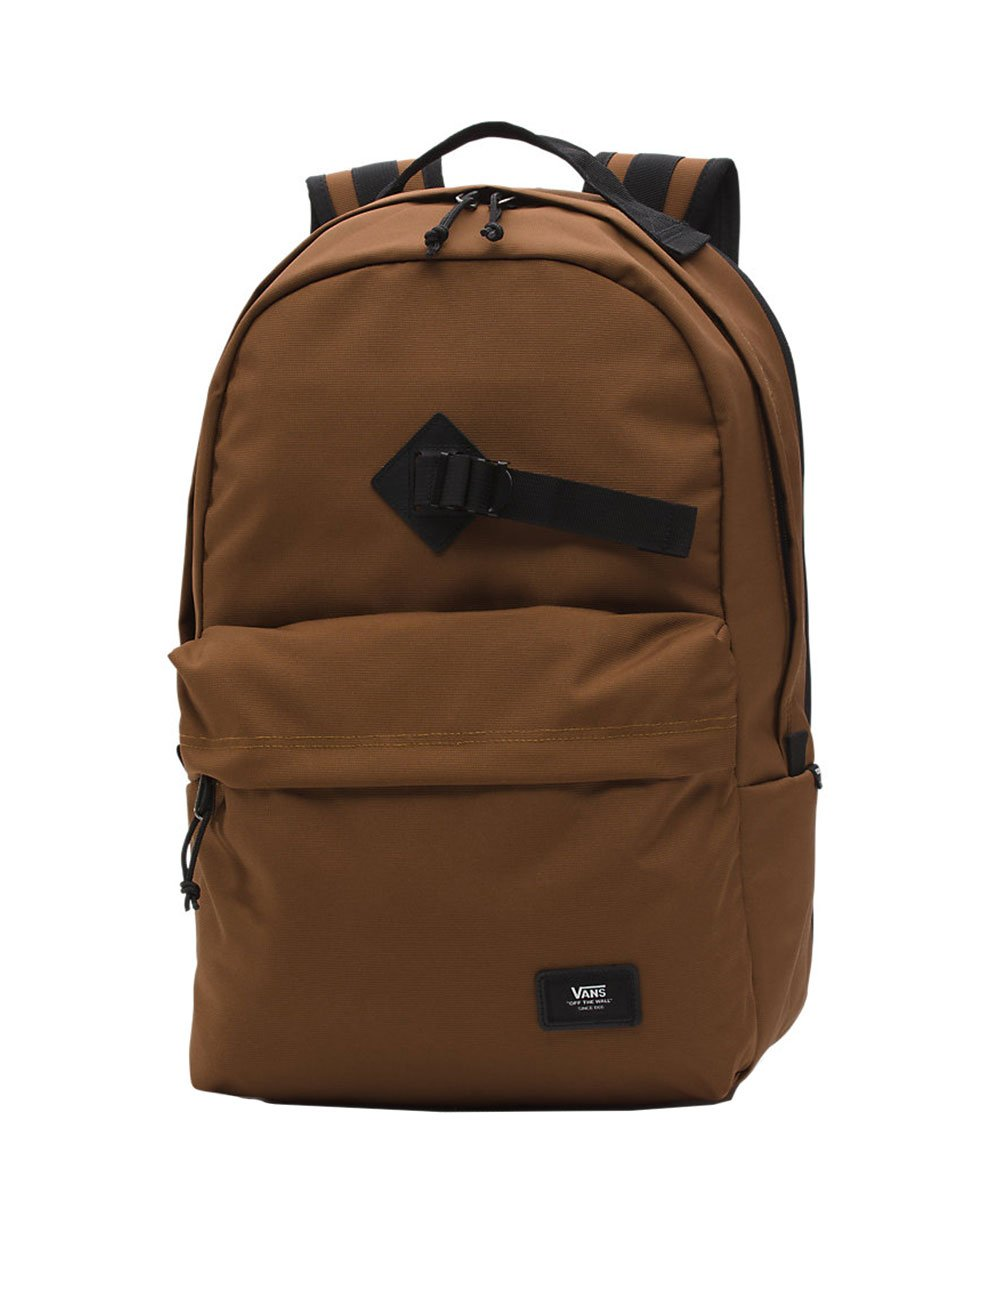 08912e99e Vans Old Skool Travel Backpack Casual Daypack, 46 cm, 26 Liters, Toffee:  Amazon.co.uk: Luggage